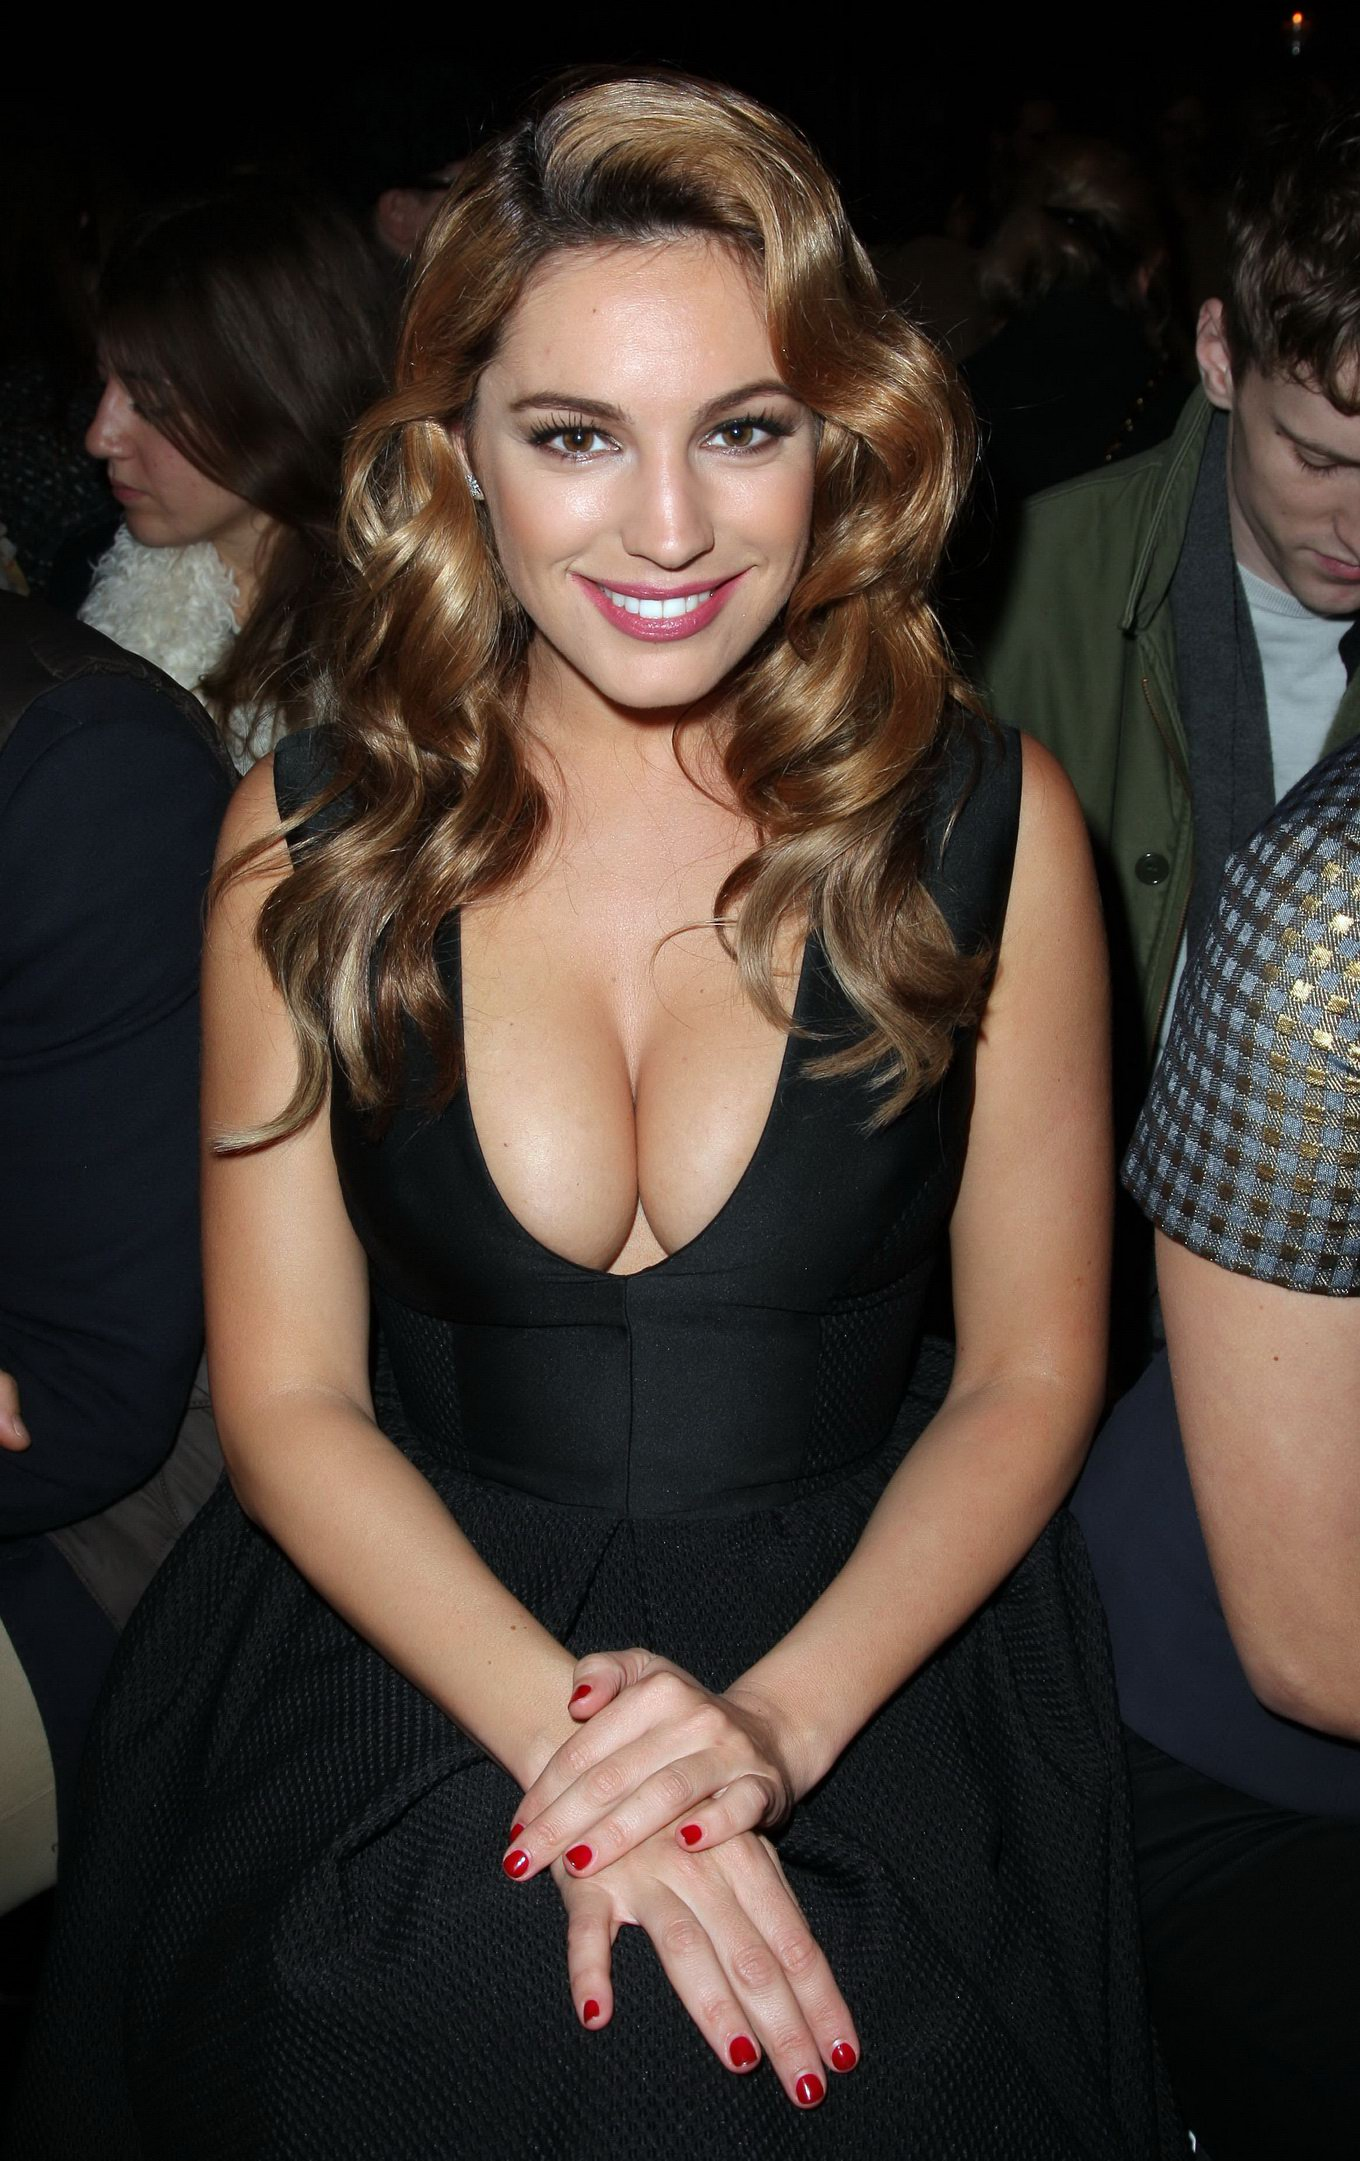 Kelly brook shows awesome cleavage wearing a black dress at london fashion week - Best shows to see in london ...